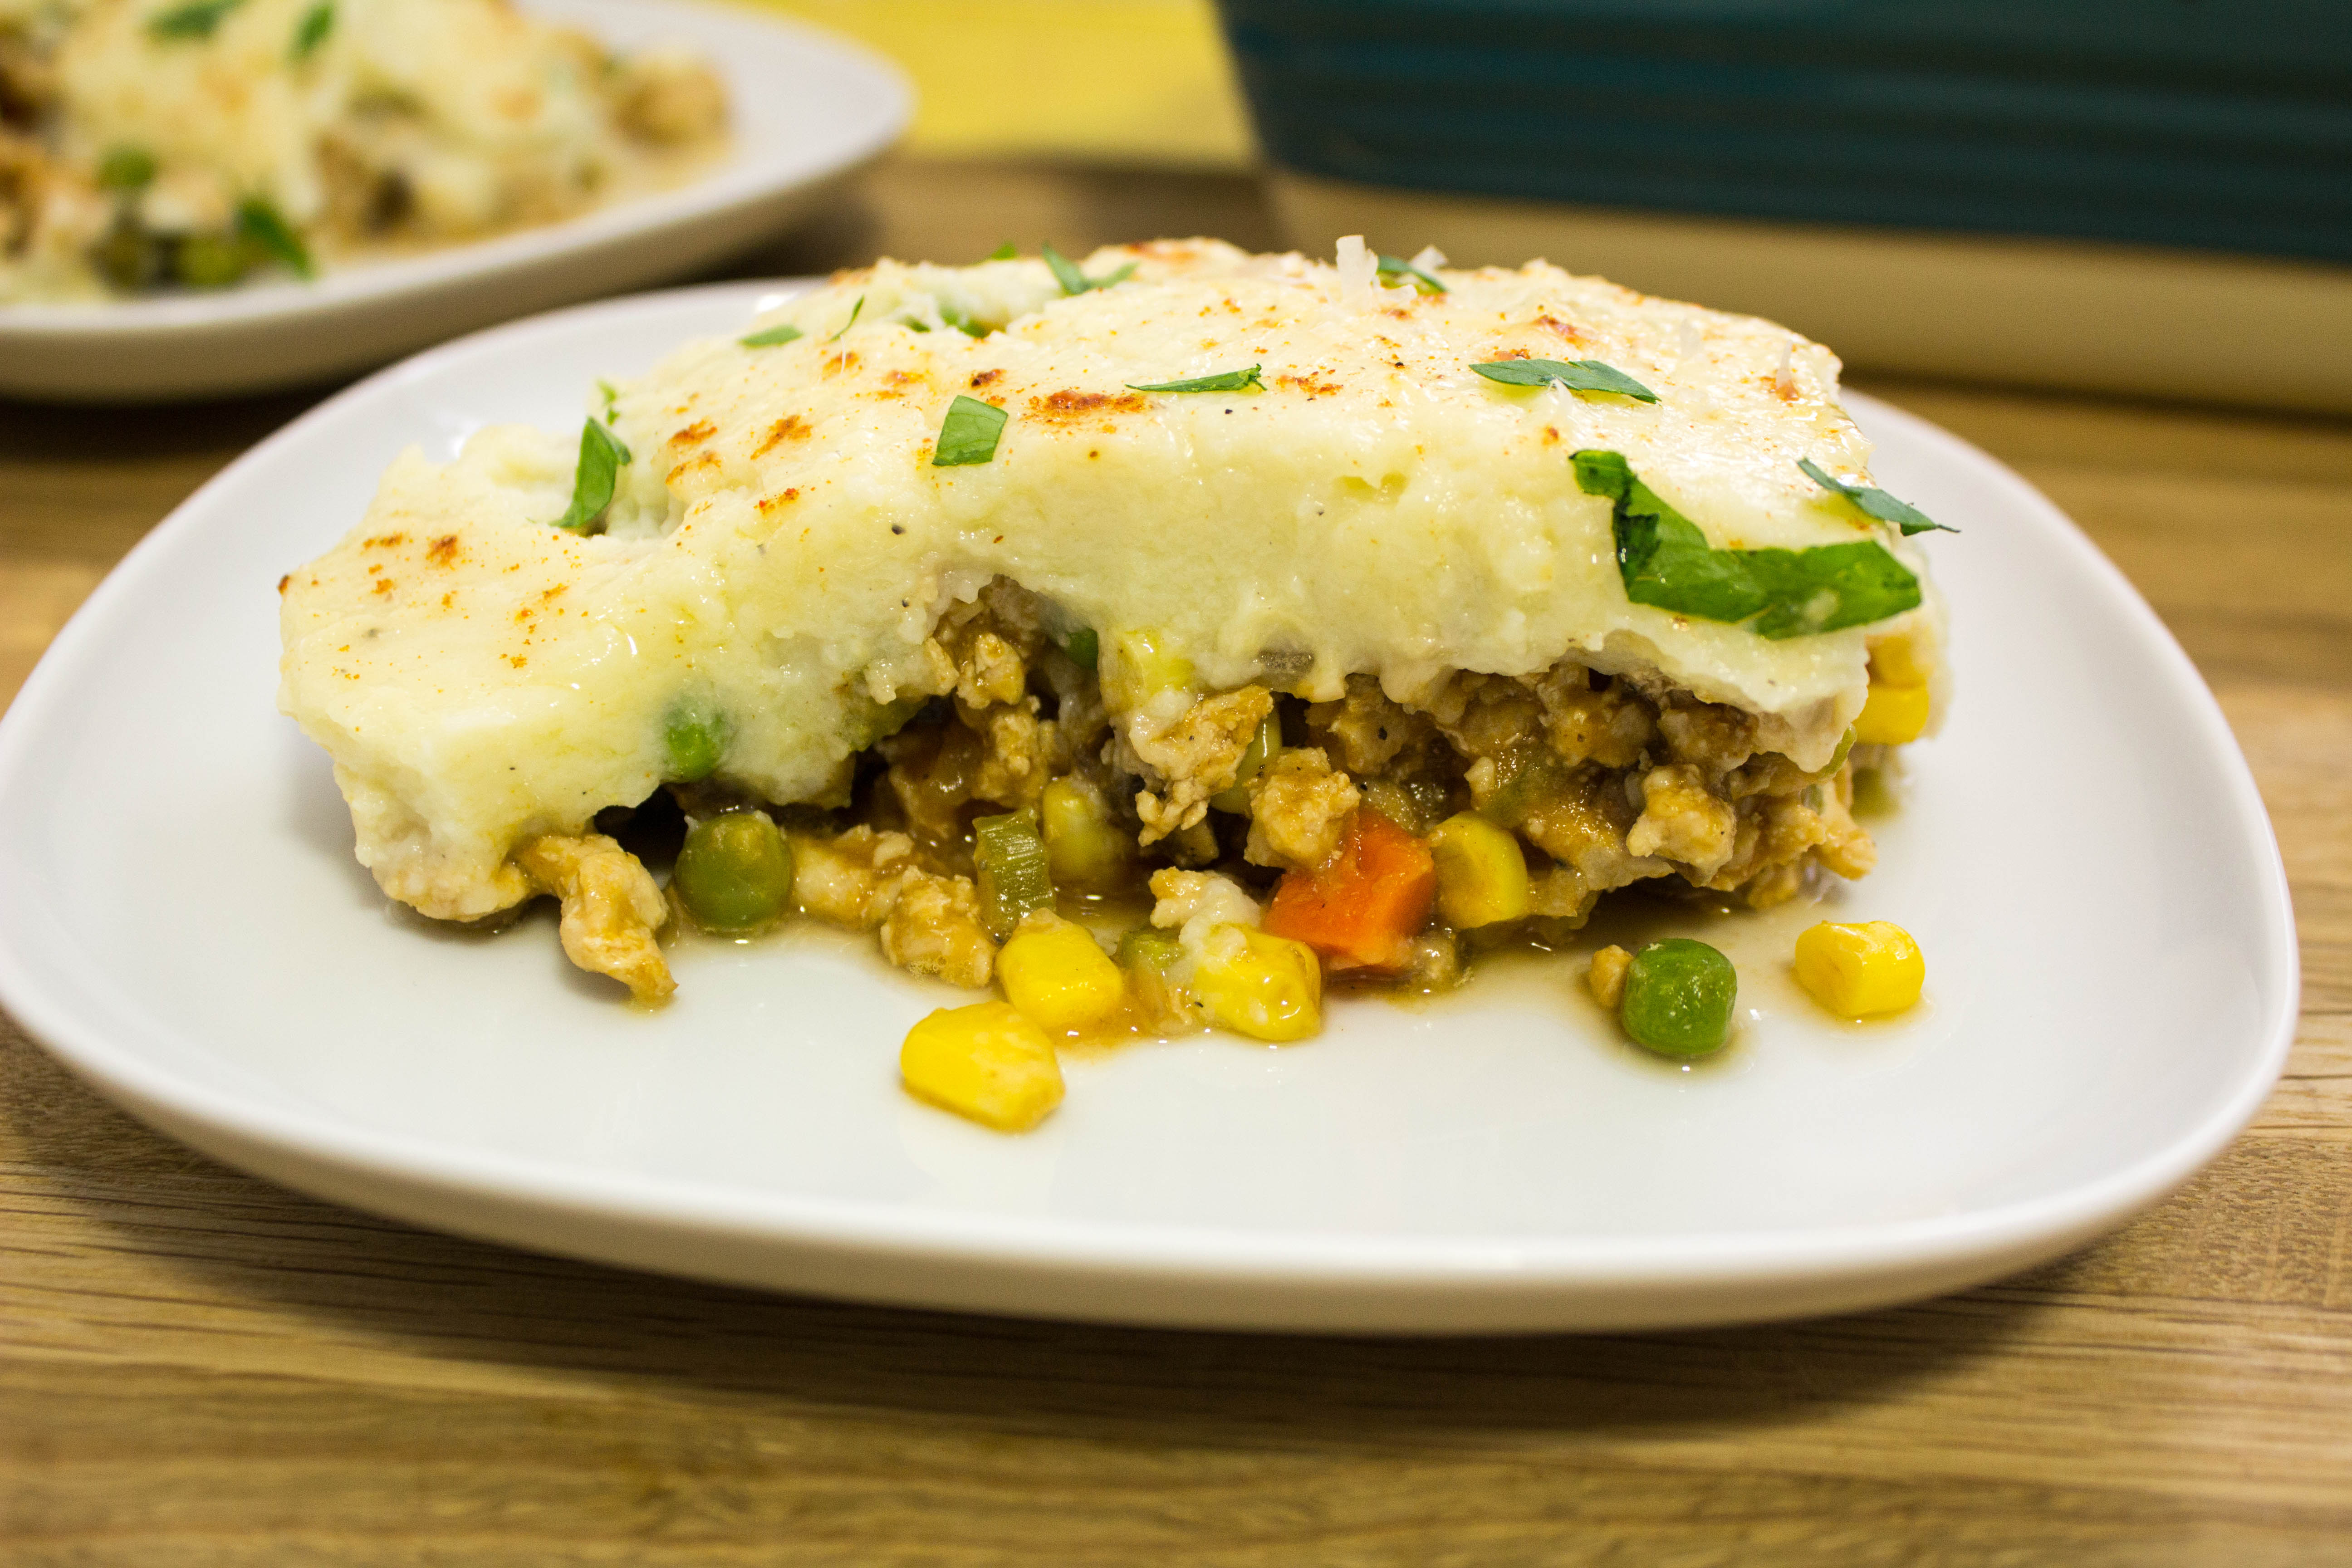 Mashed Cauliflower Shepherd's Pie- All the traditional flavors of the traditional recipe without the guilt! Savory, spiced meat & veggies topped with creamy mashed cauliflower. Weight Watchers friendly. www.bitesofflavor.com